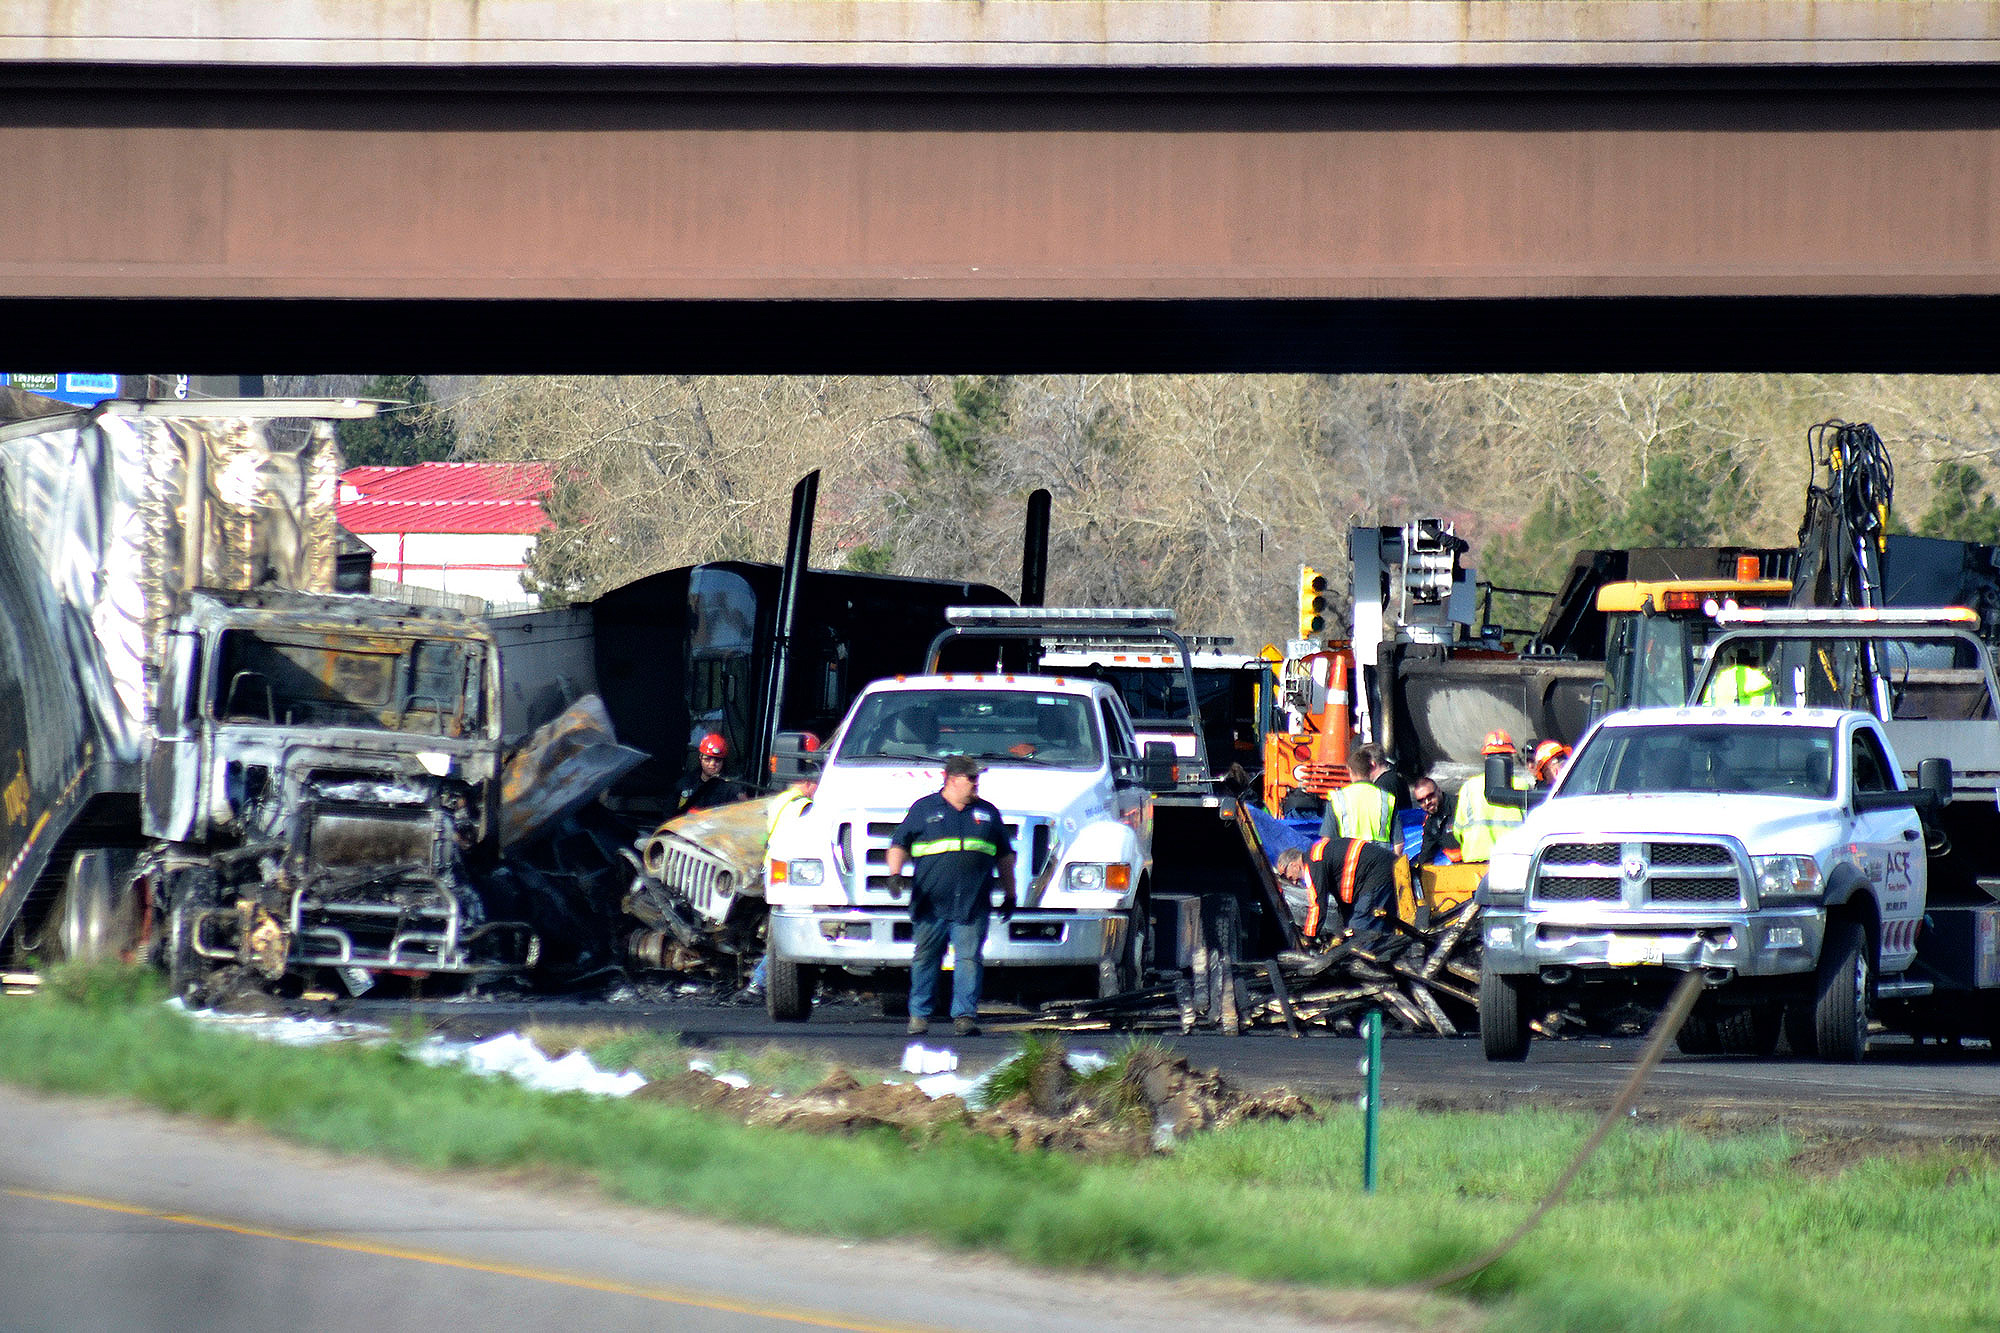 <p>Authorities survey the scene of a fiery crash on I-70 near Colorado Mills Parkway that shut down the highway in both directions on Friday, April 26, 2019. Lakewood, Colo. A truck driver blamed for causing a deadly pileup involving over two dozen vehicles near Denver has been arrested on vehicular homicide charges. Lakewood police spokesman Ty Countryman said Friday that there's no indication that drugs or alcohol played a role in Thursday's crash.</p>